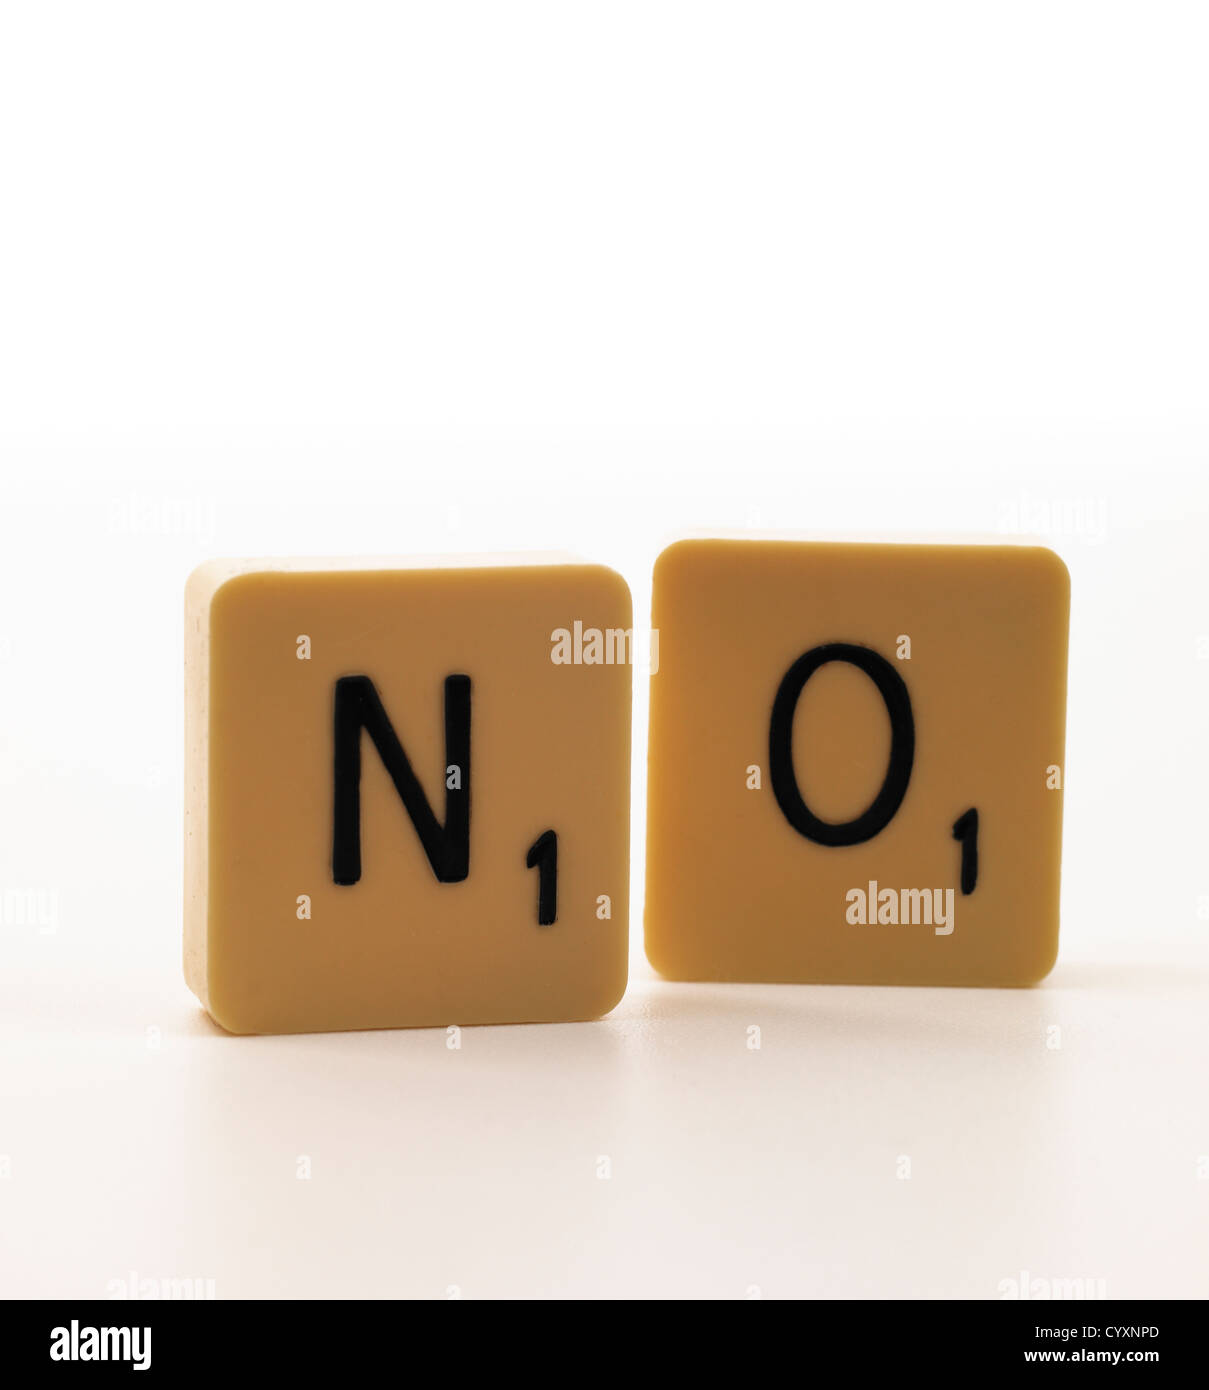 no scrabble tiles on white background stock photo 51604293 alamy